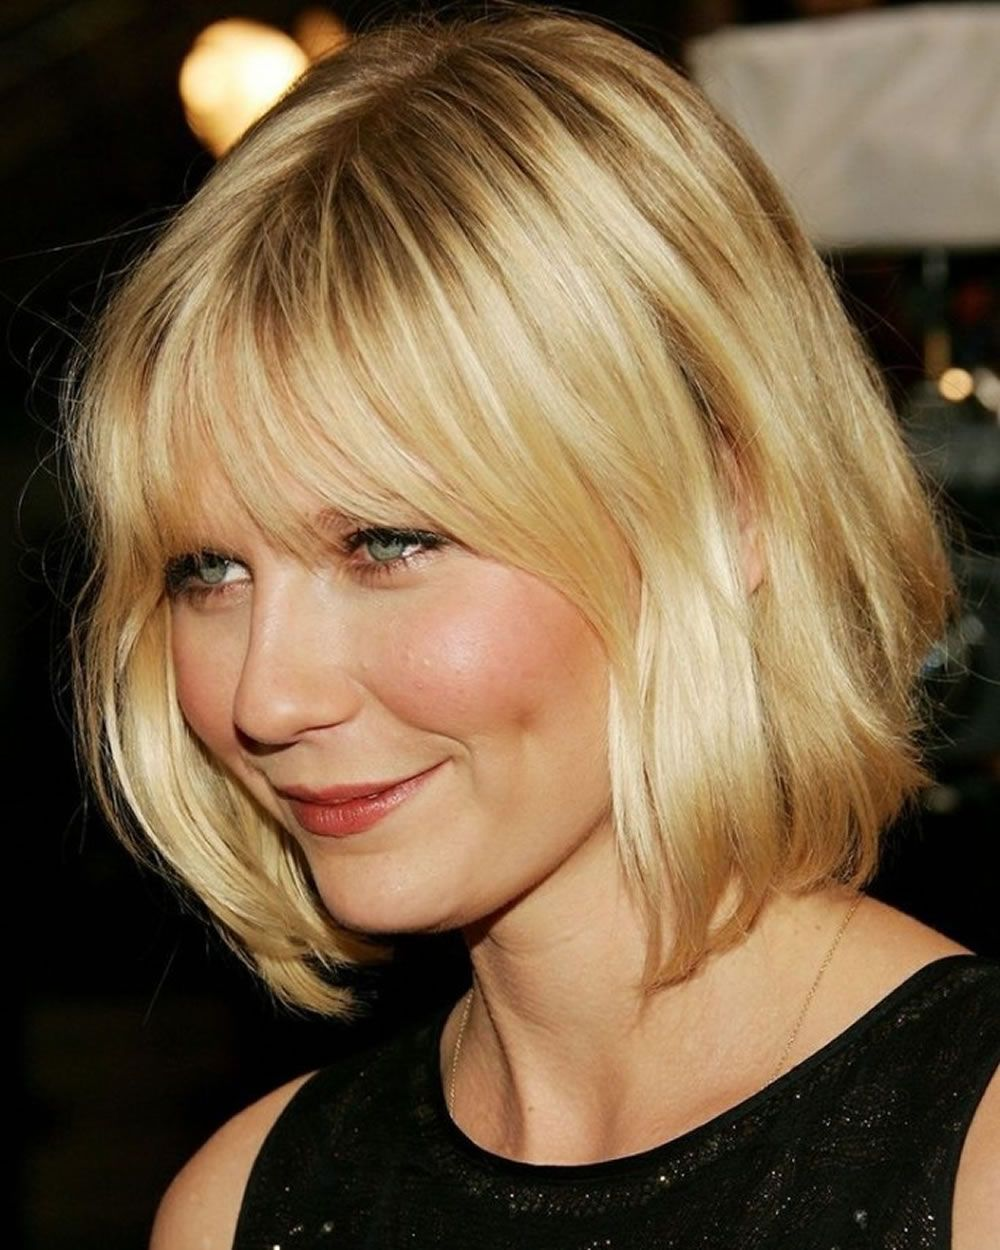 Wavy Short Bob Style For Summer 2020 2021 Short Hair Styles For Round Faces Short Hair Styles Cute Hairstyles For Short Hair